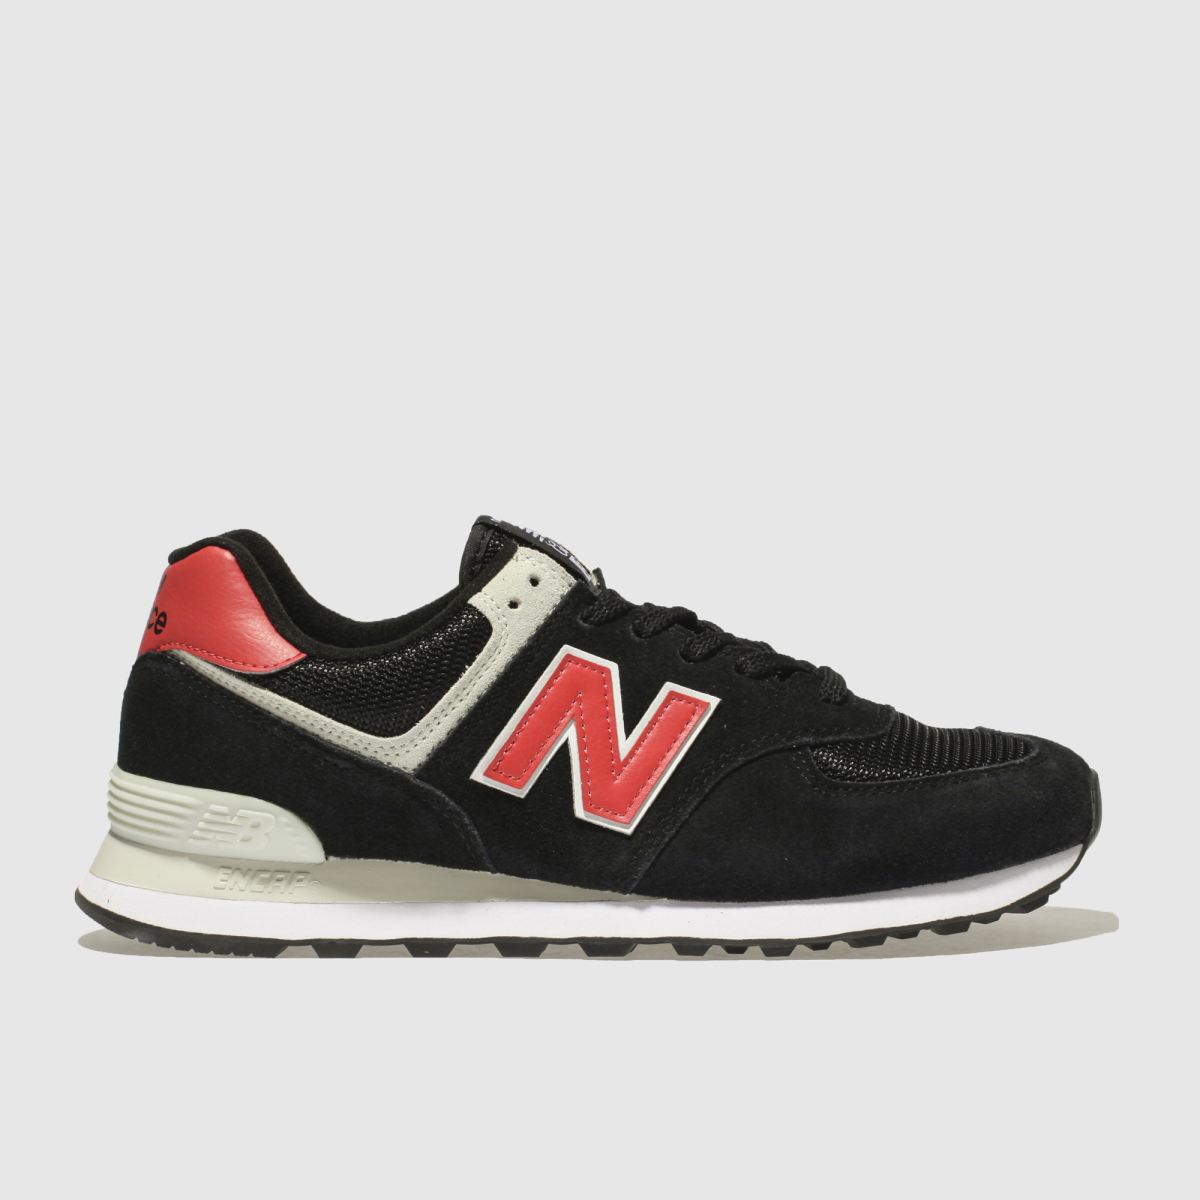 New Balance Black & Red 574 Trainers